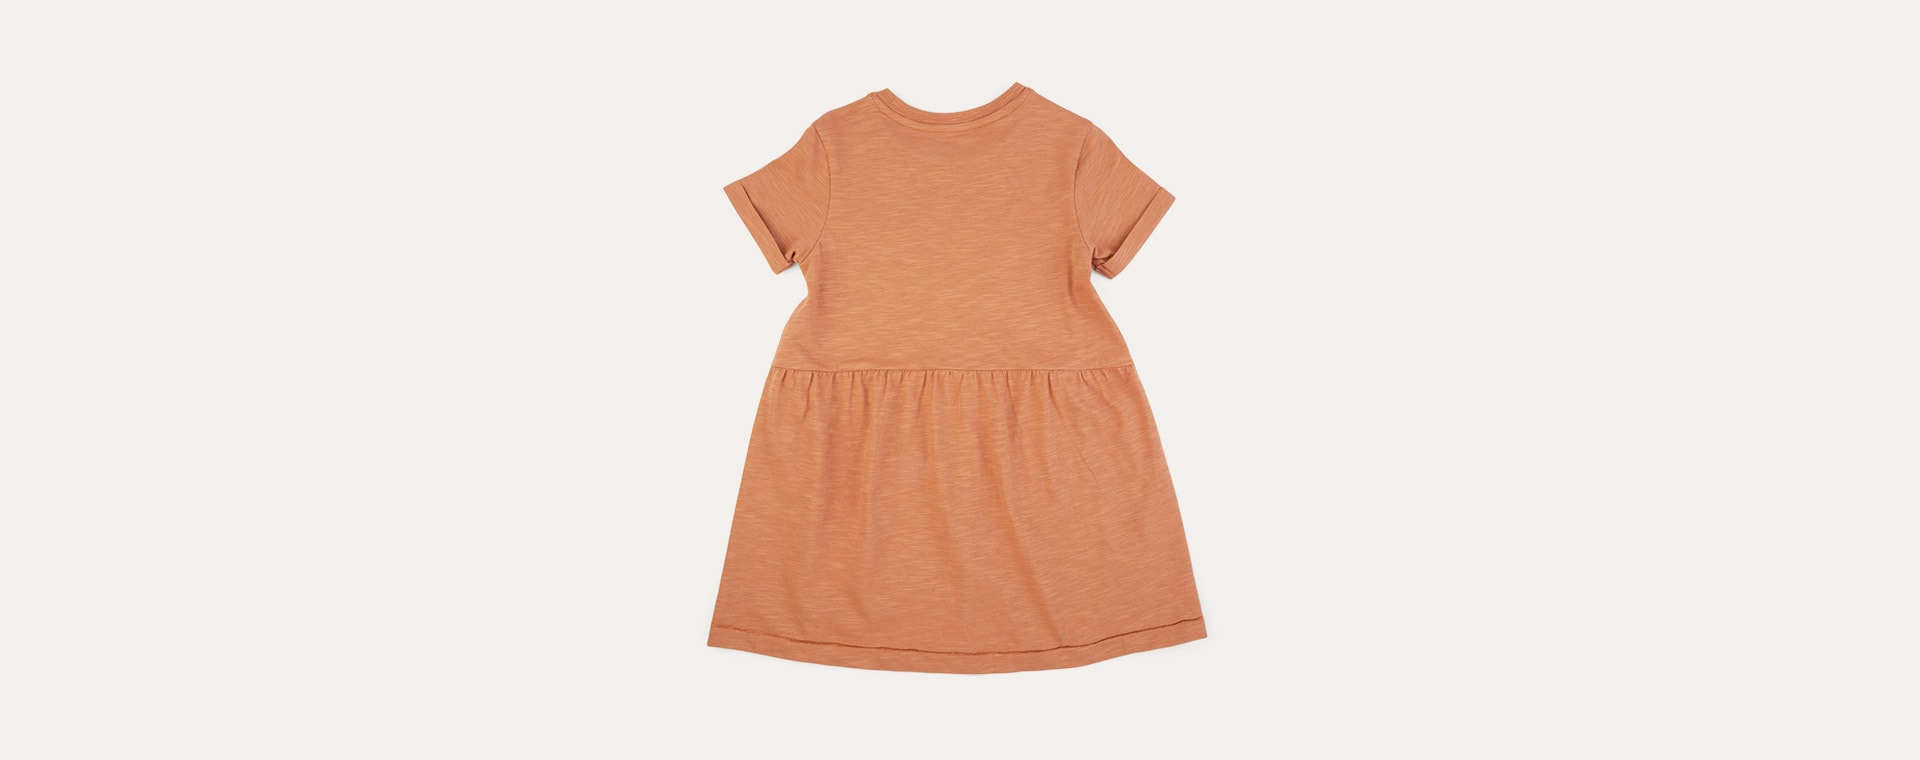 Nut KIDLY Label Perfect Tee Dress